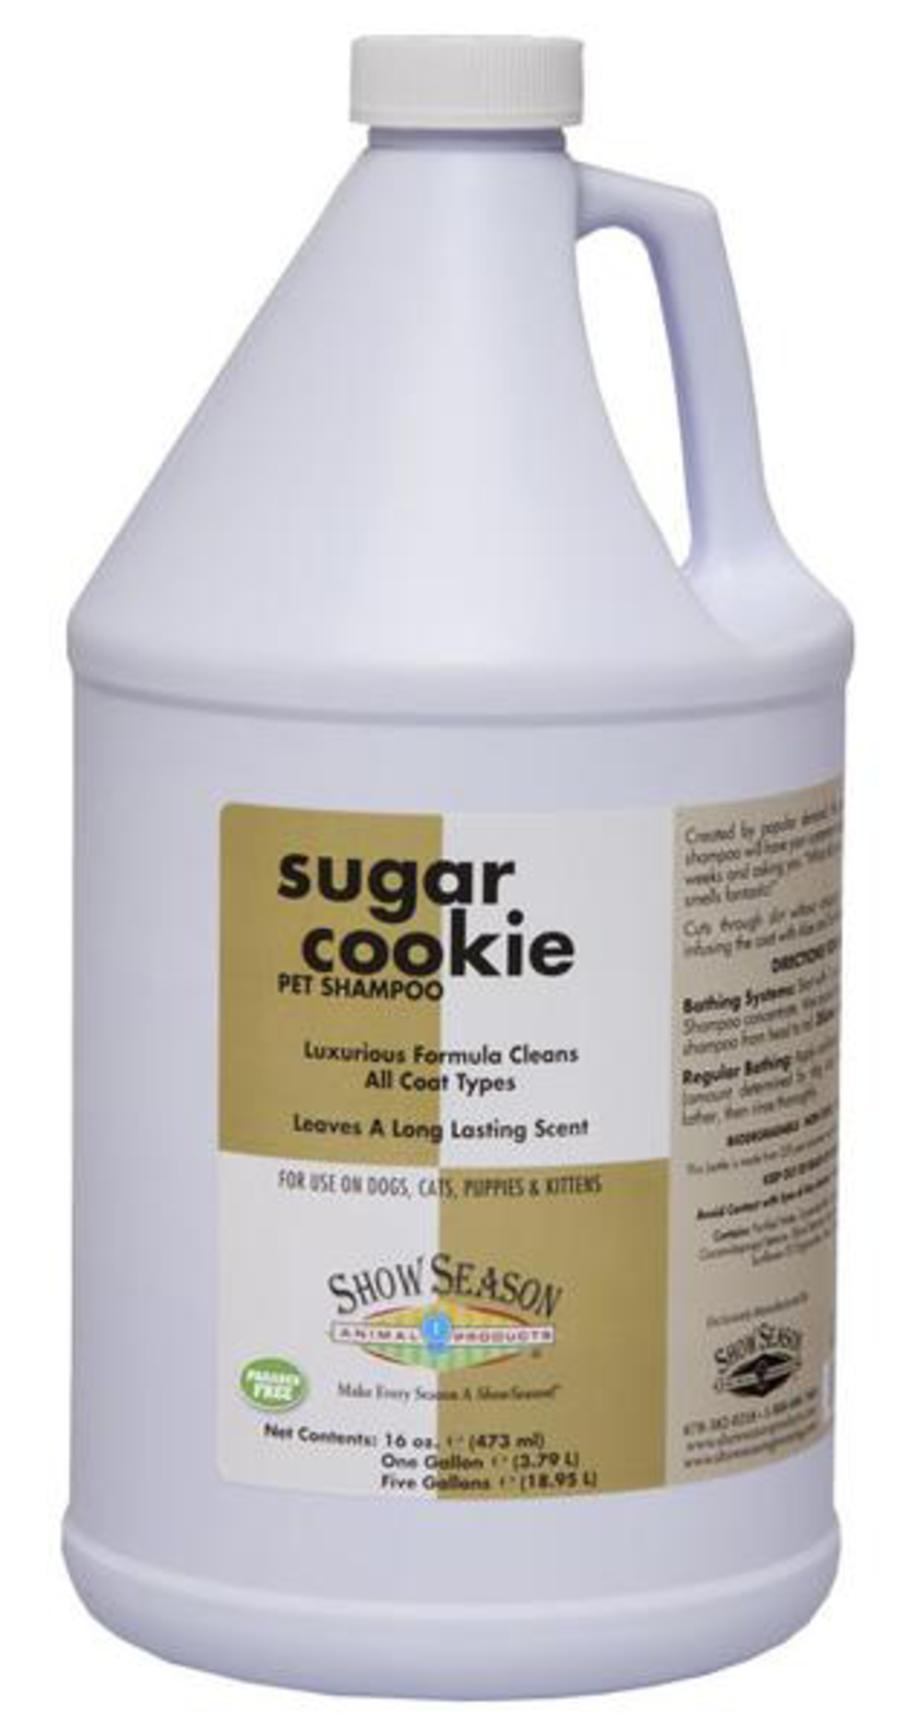 Showseason Sugar Cookie Shampoo